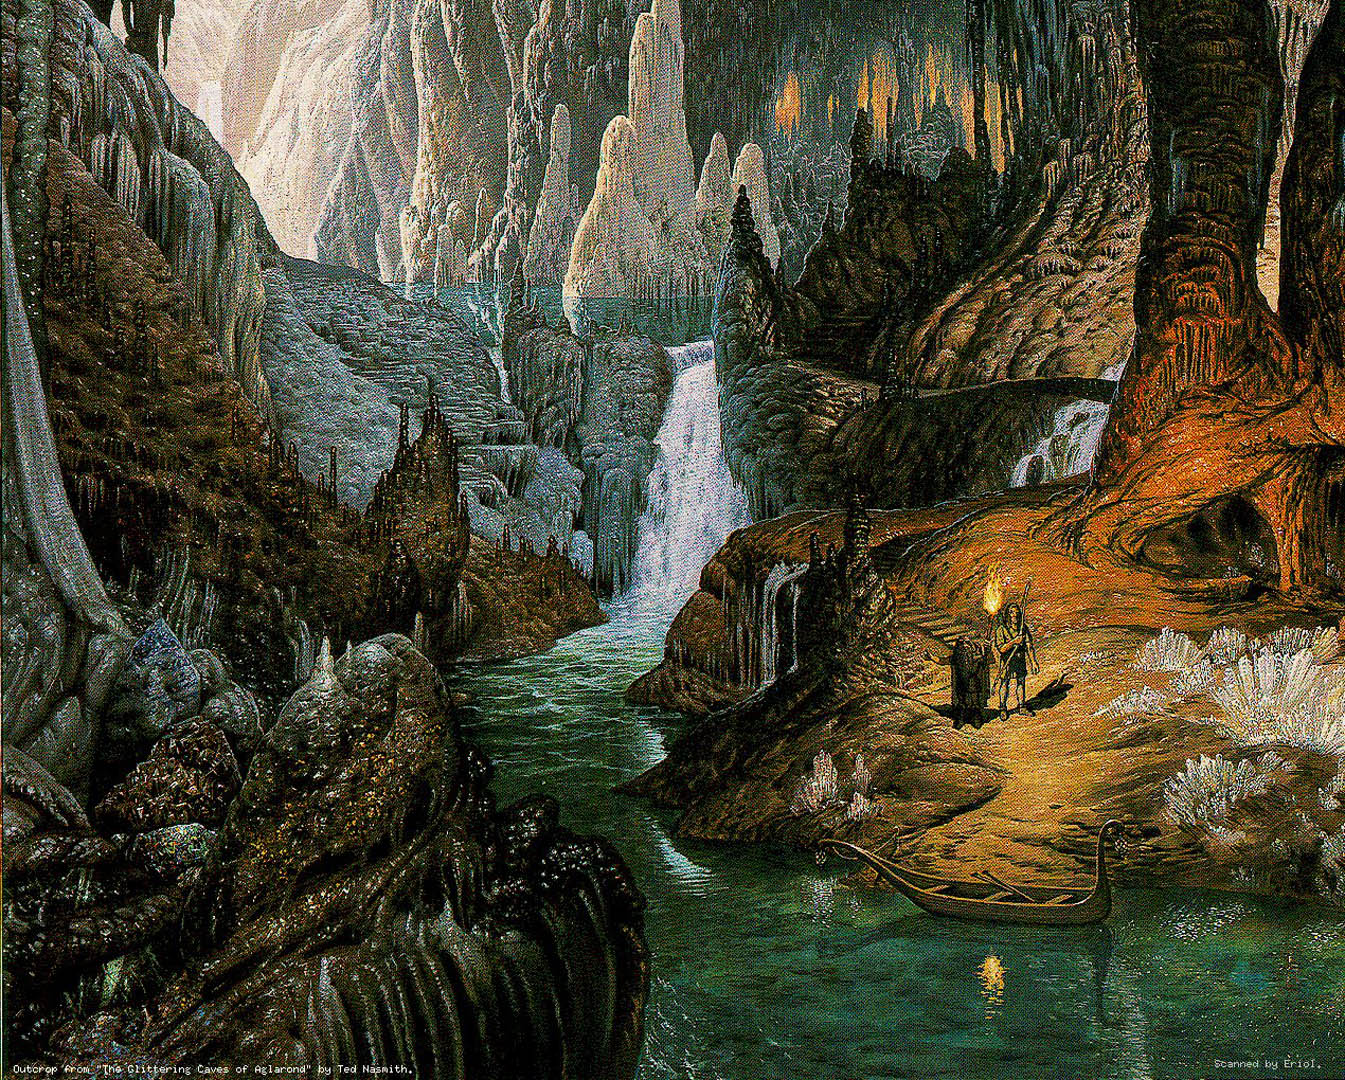 """jrr tolkiens lord of the rings essay Taking place long before the events of """"the hobbit"""" and """"the lord of the rings,"""" the books fill in the historical  a helpful essay explains how the story."""